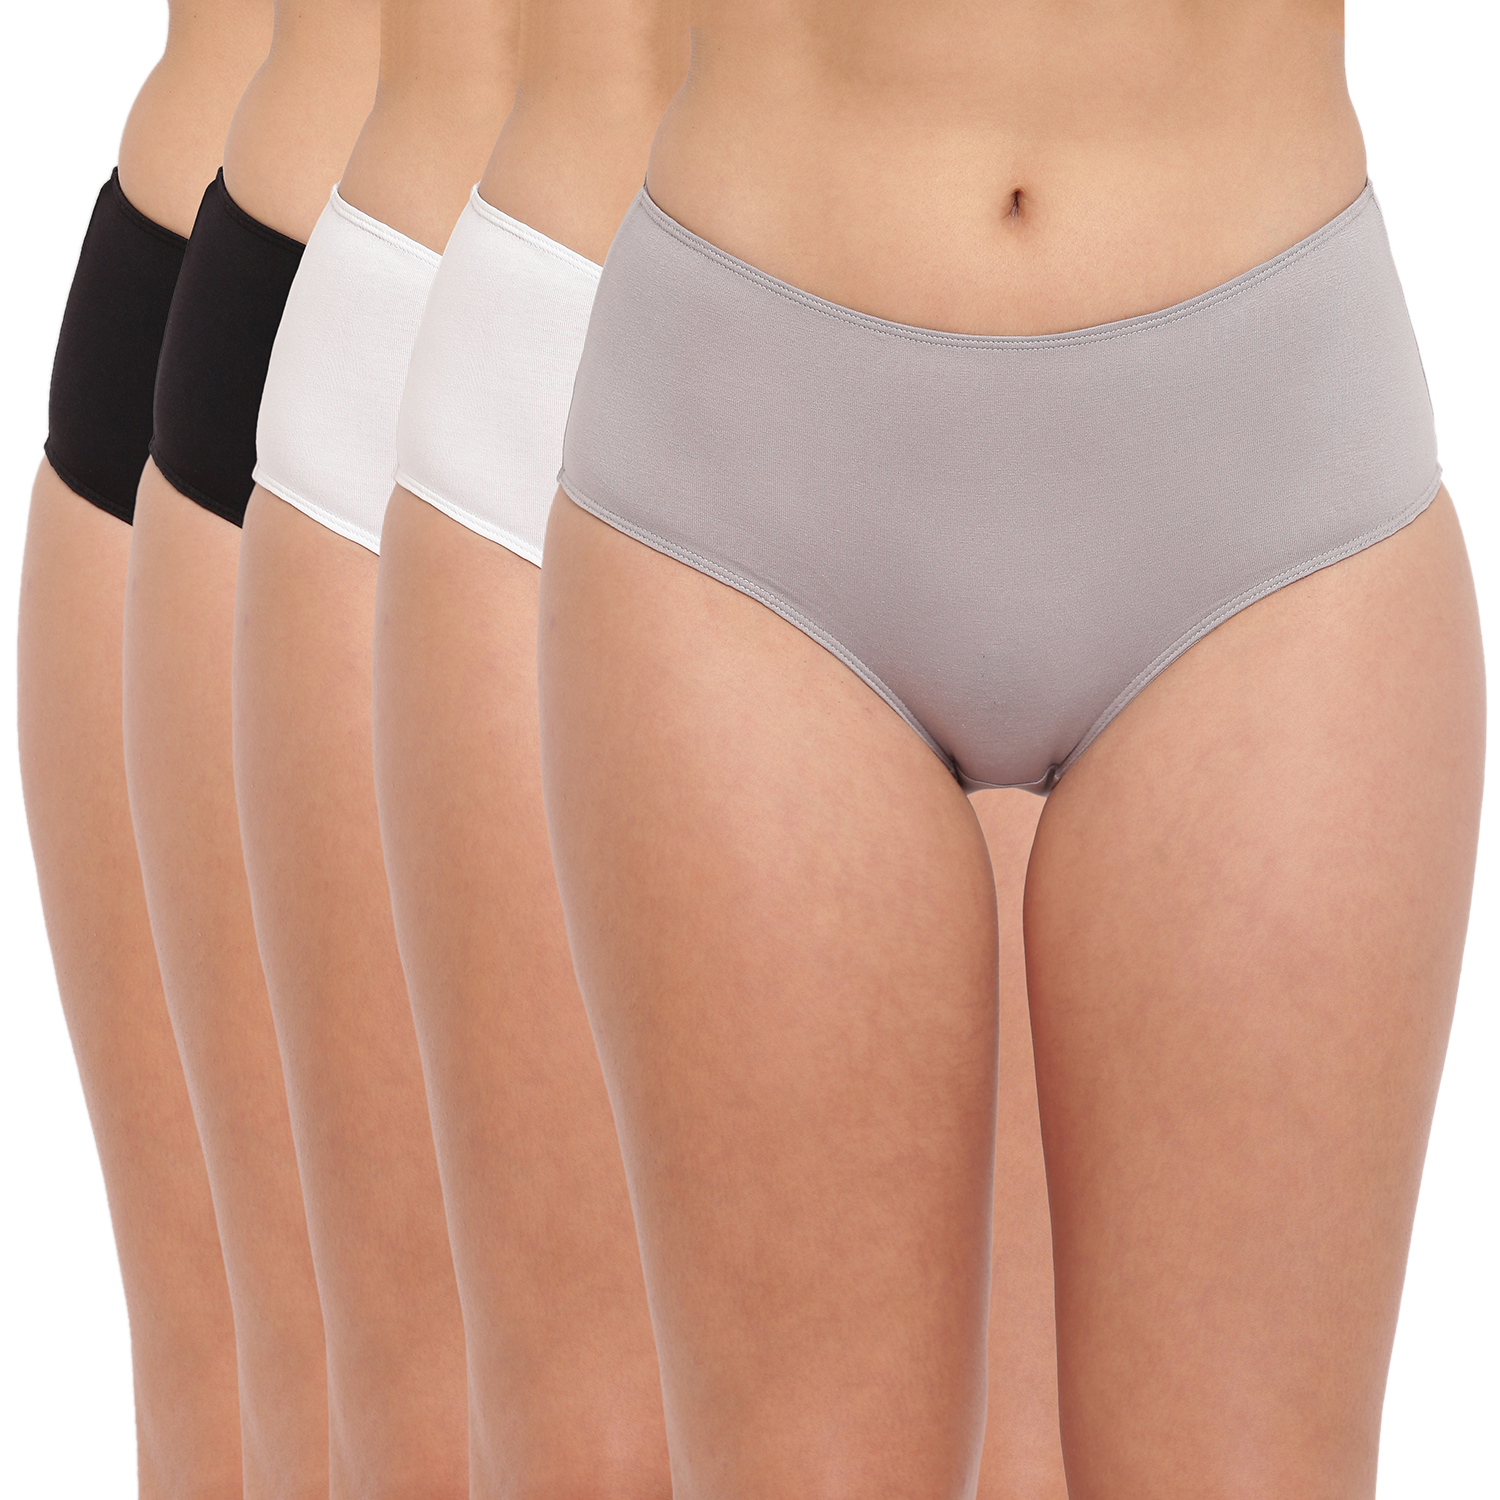 BASIICS by La Intimo | Tease 2 Please Hipster/ Full Brief Black-White-Grey (Pack of 5)